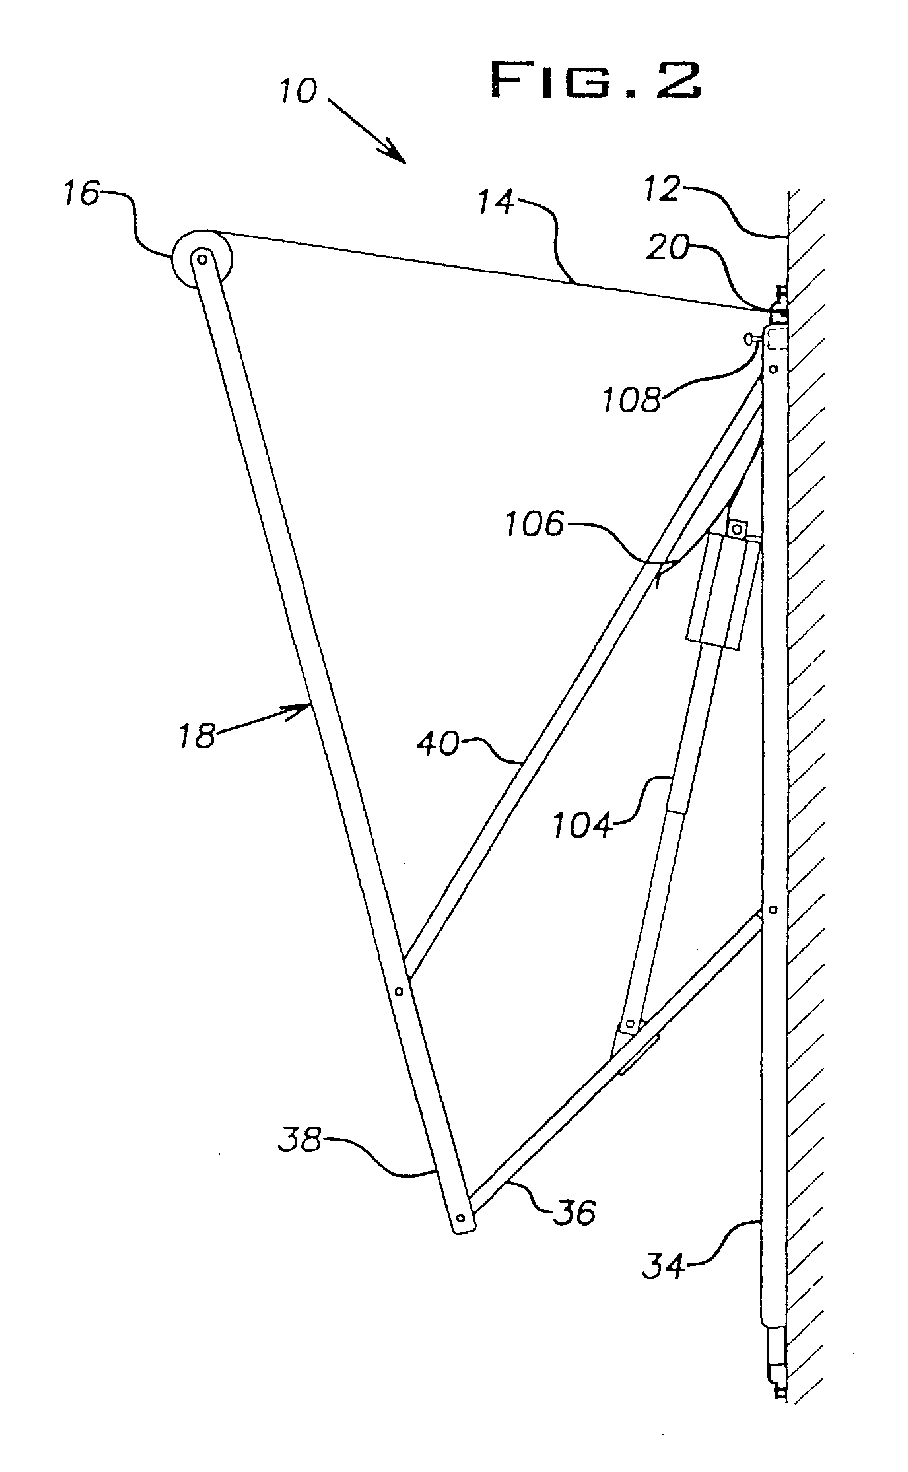 Awning extension and retraction mechanism - Patent 0980787